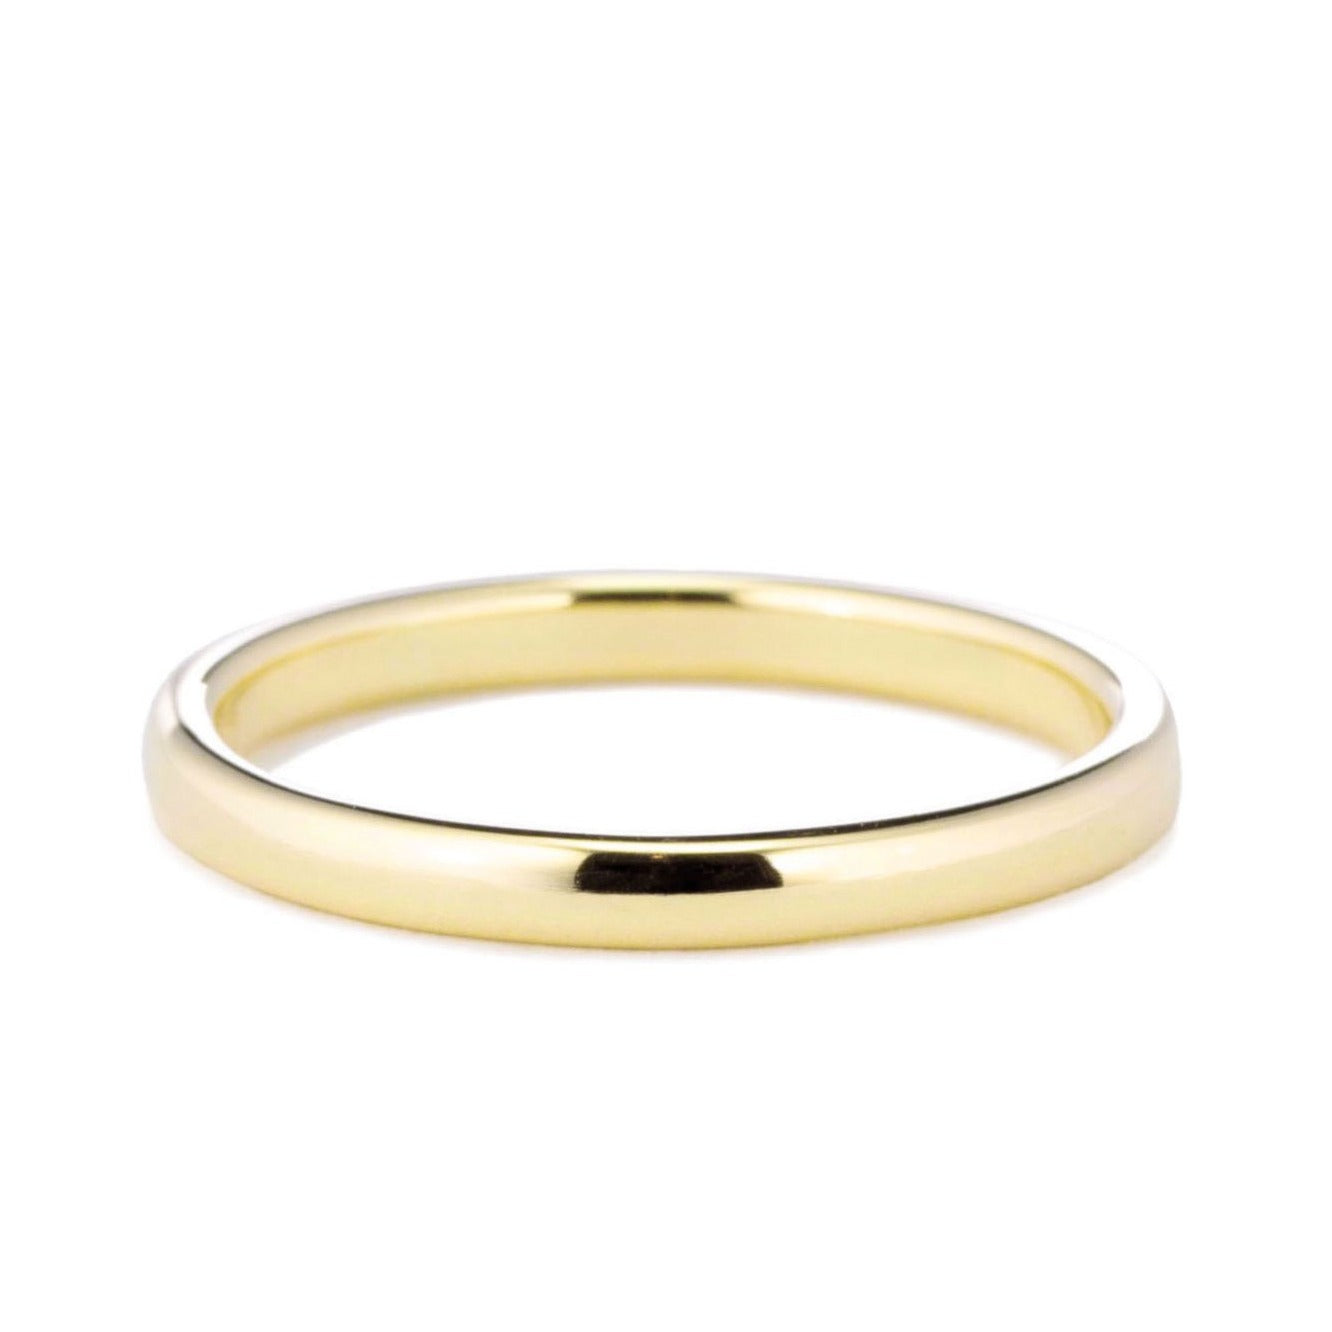 Classic Domed Wedding Band in yellow gold